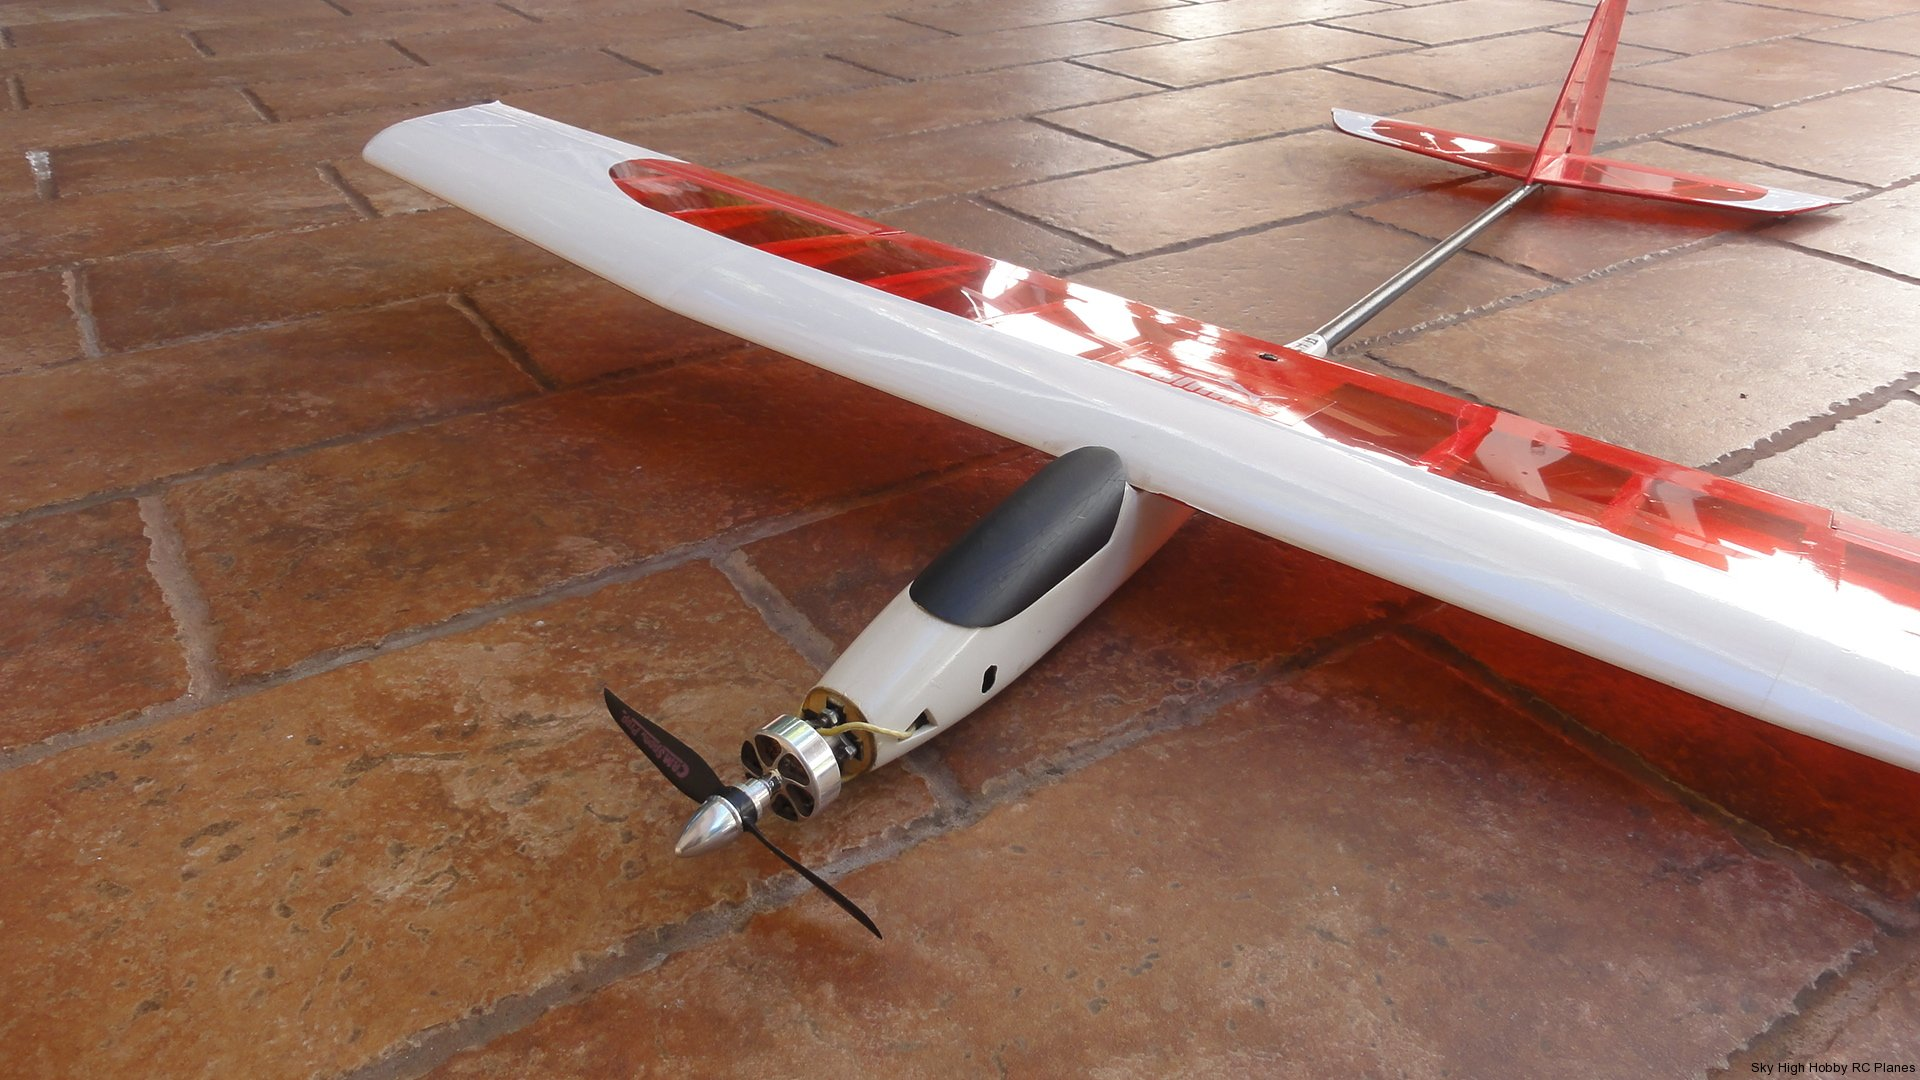 best rc beginner plane with Rc Sailplanes Rc Gliders Slope Soaring Rc Planes From Hobby Lobby on gettingstartedinrc further Model Airplane Engines also Watch in addition Hangar 9 Beast further Different Types Of Drones.